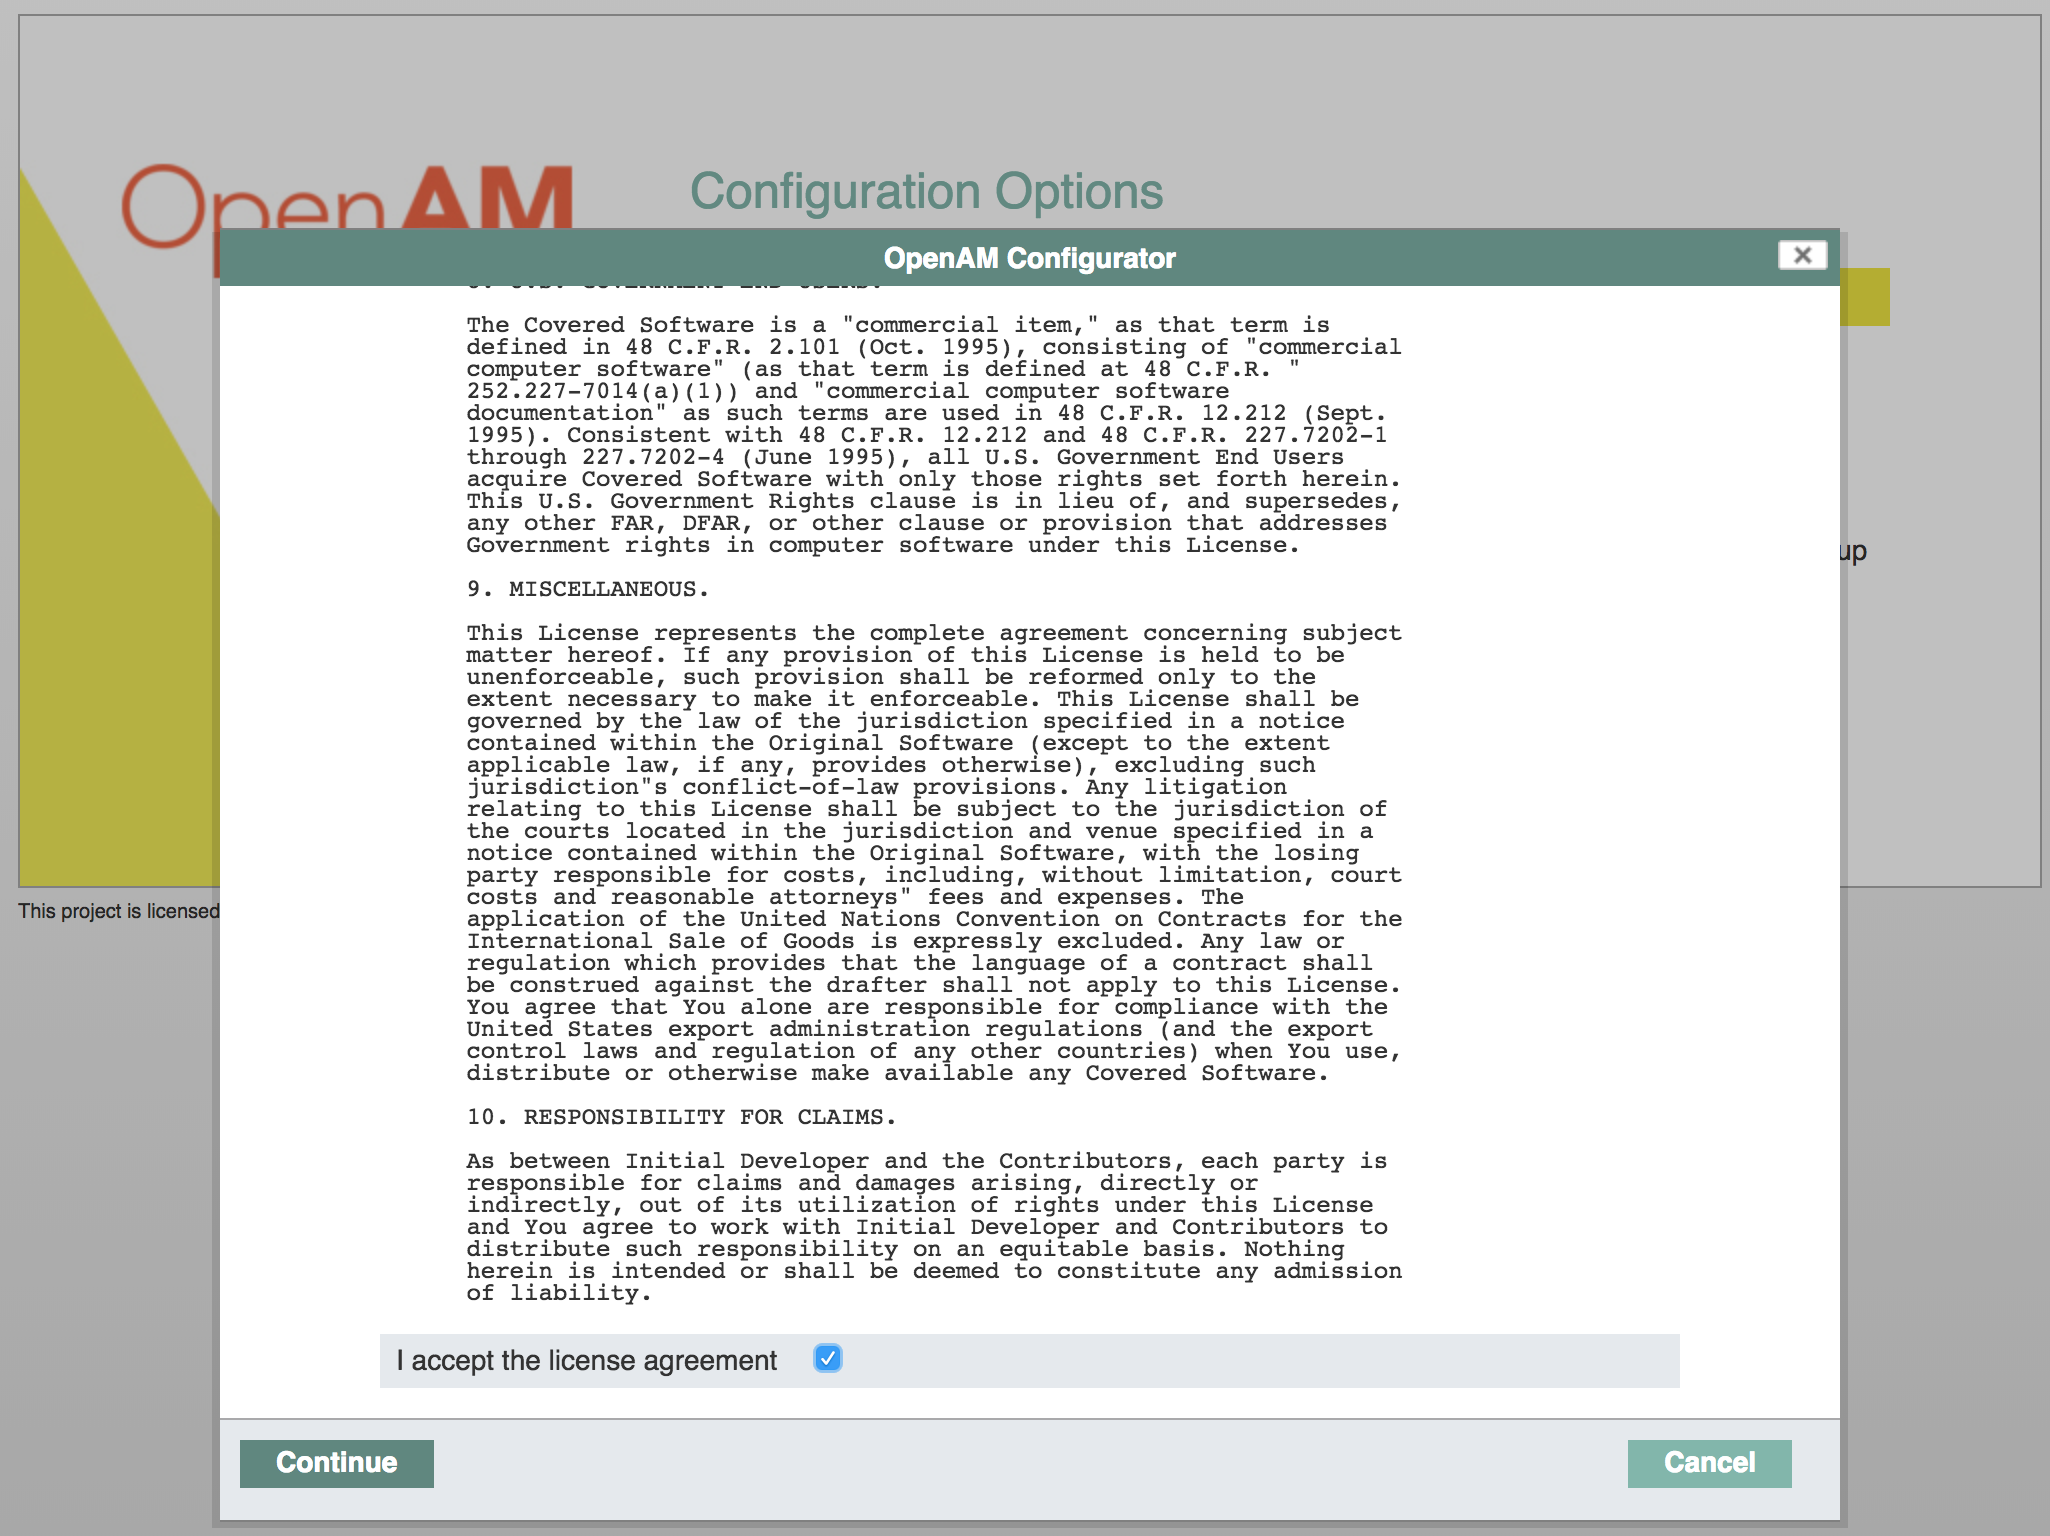 OpenAM License Agreement